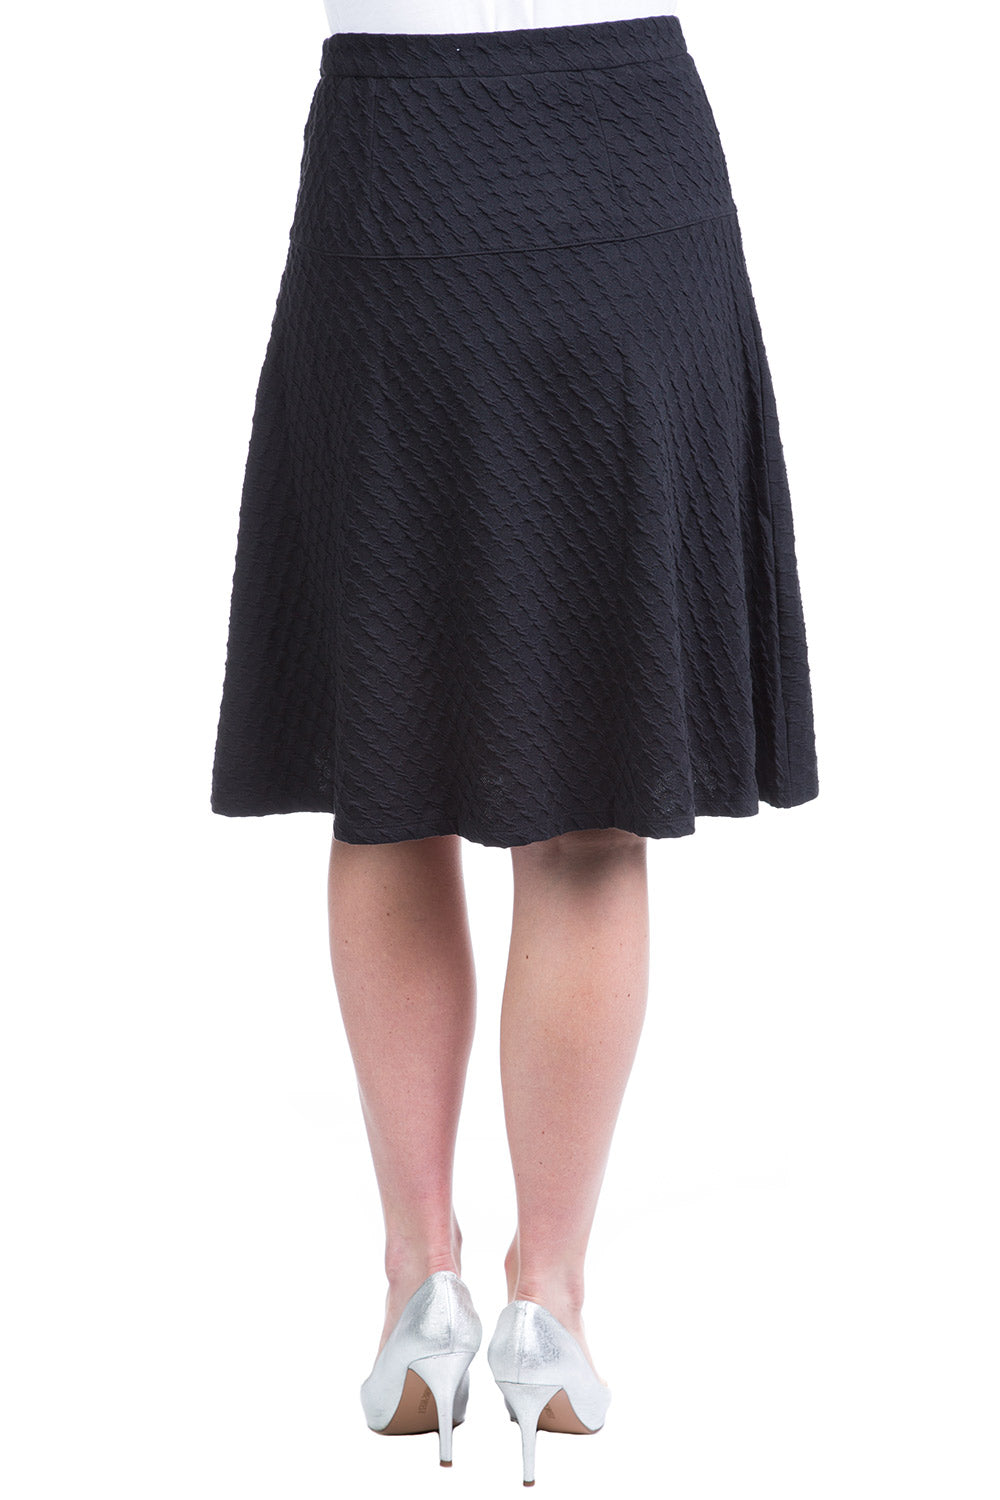 Type 4 Step Out In Style Skirt